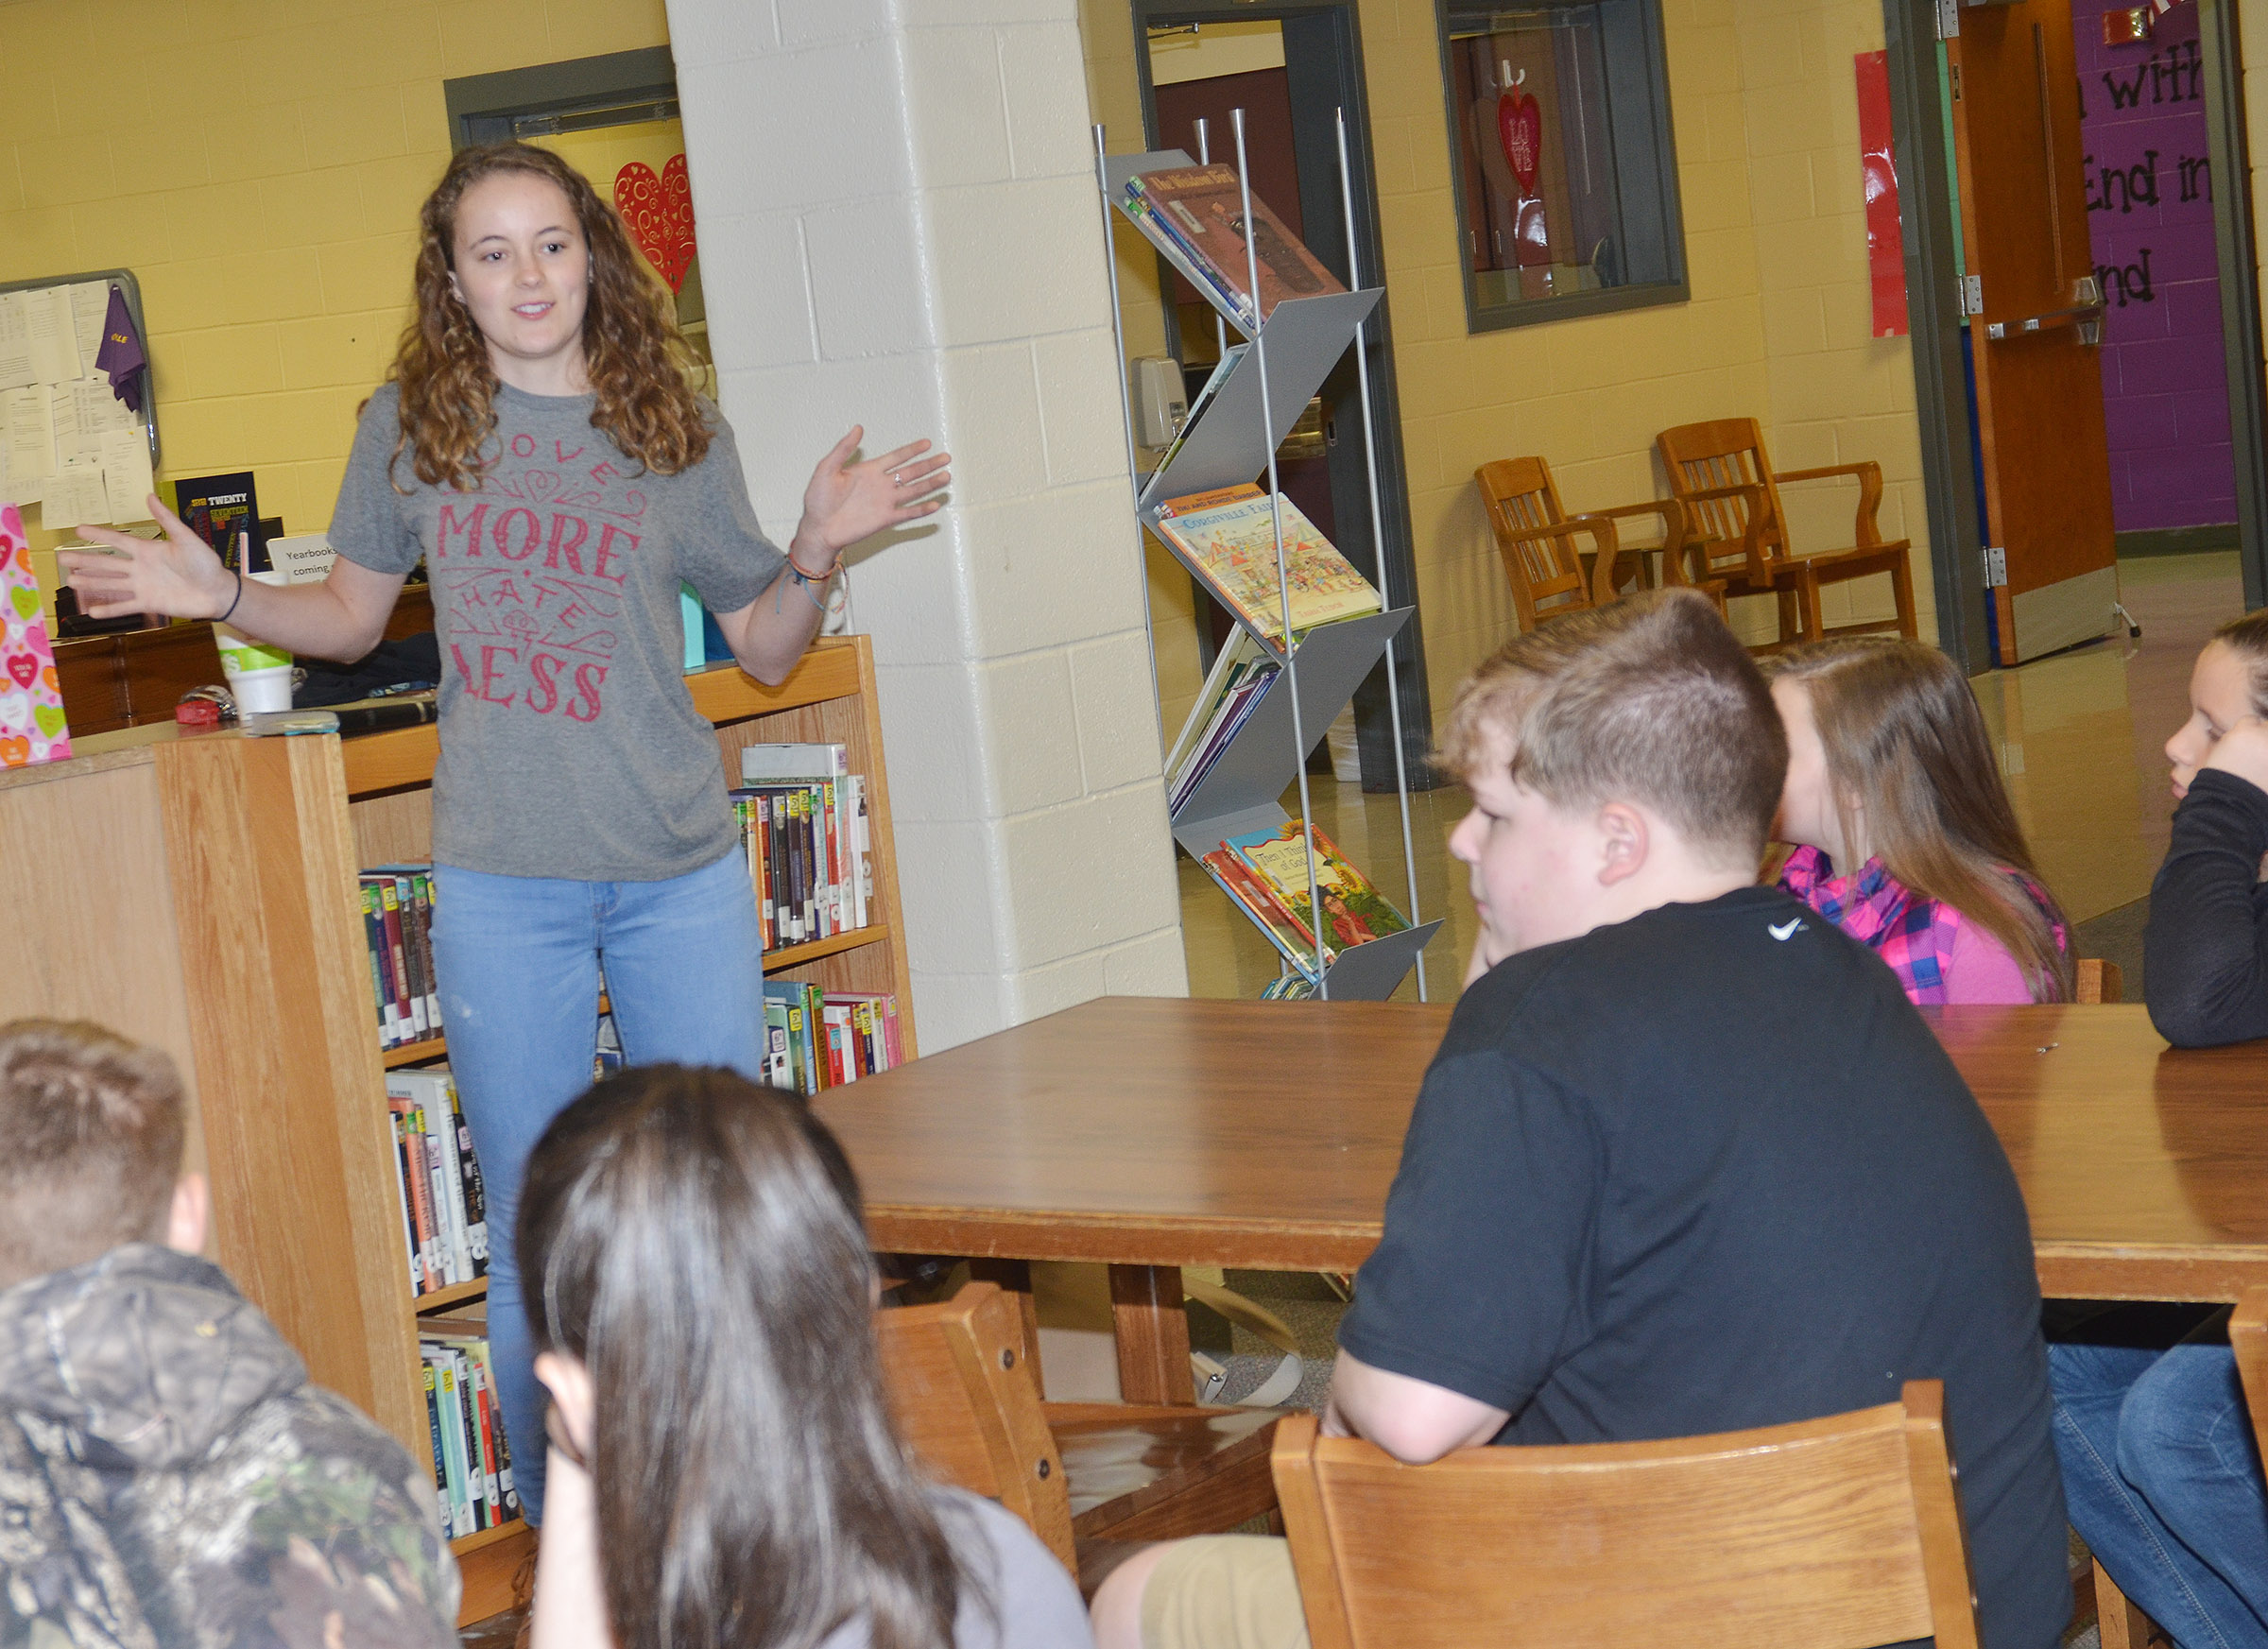 CHS senior Caroline McMahan speaks to CMS FCA students about God's love.